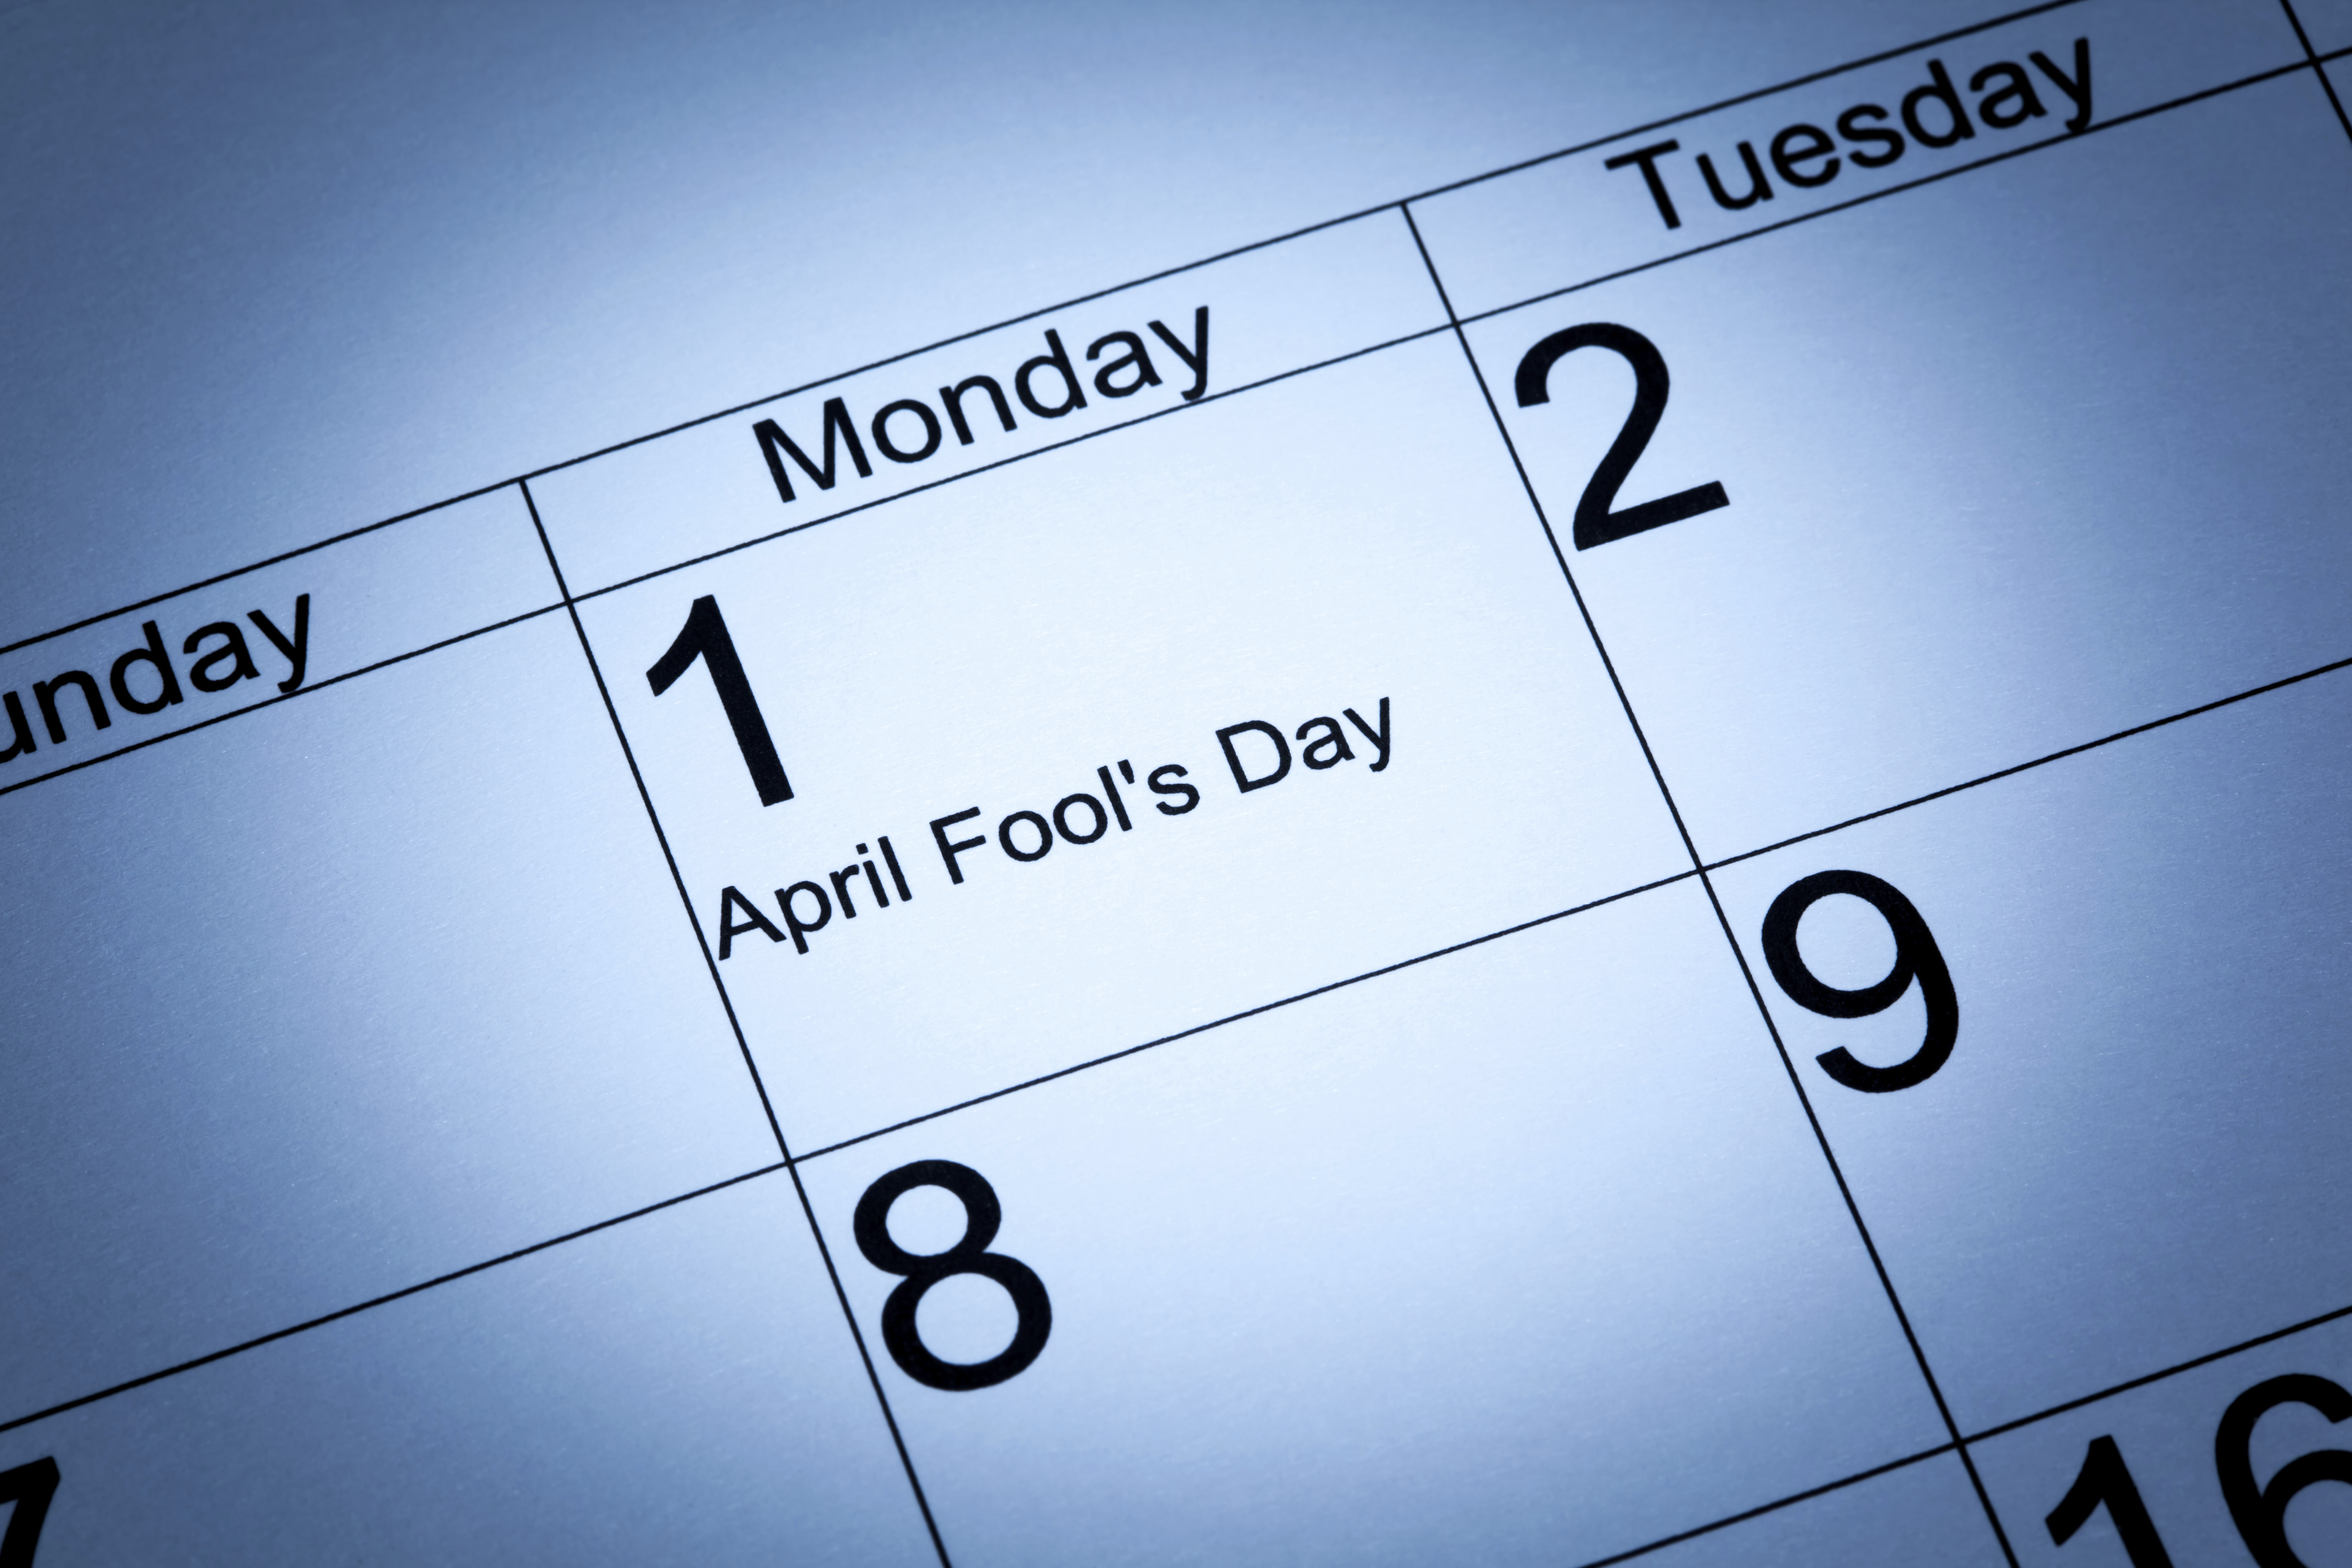 April Fool's day in the calendar